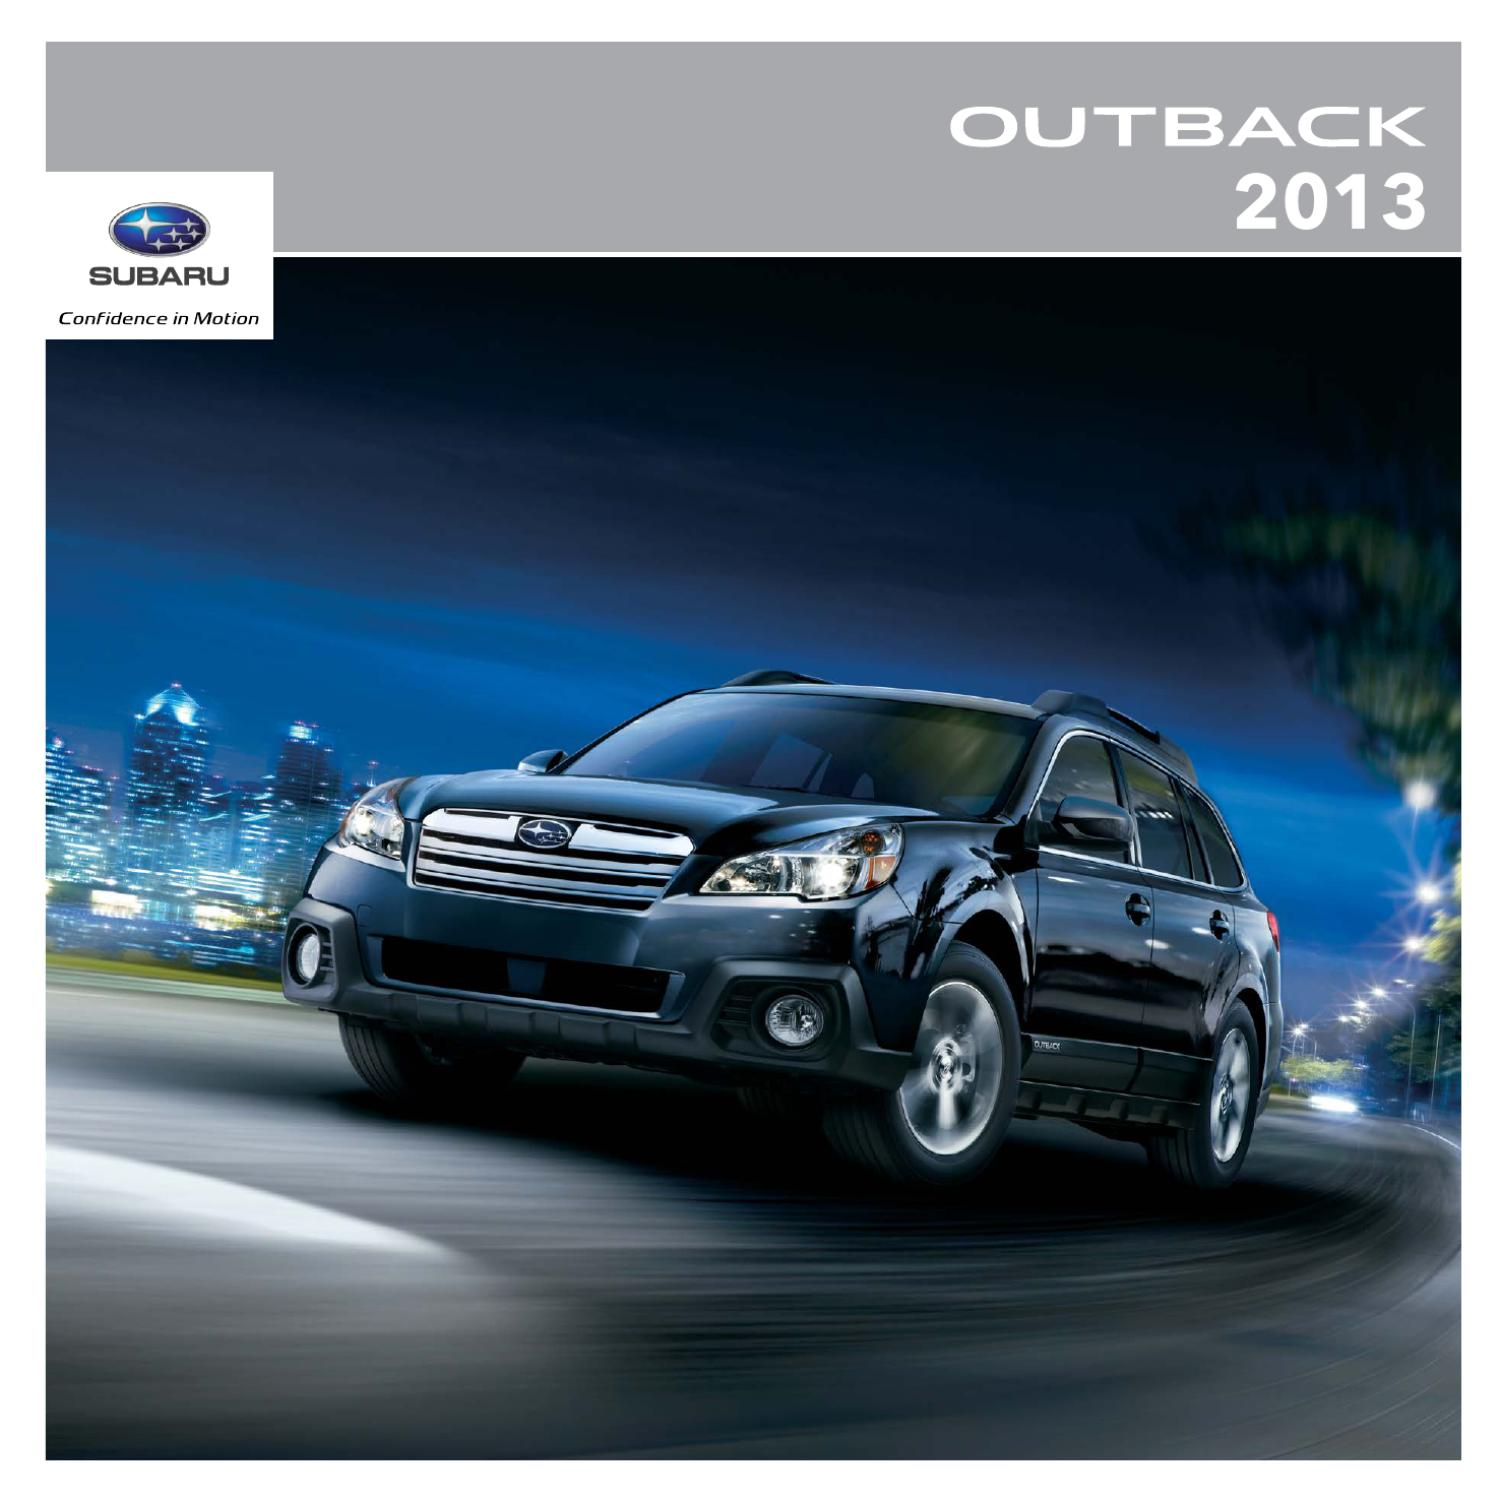 2013 Subaru Outback Brochure by Subaru Canada - issuu